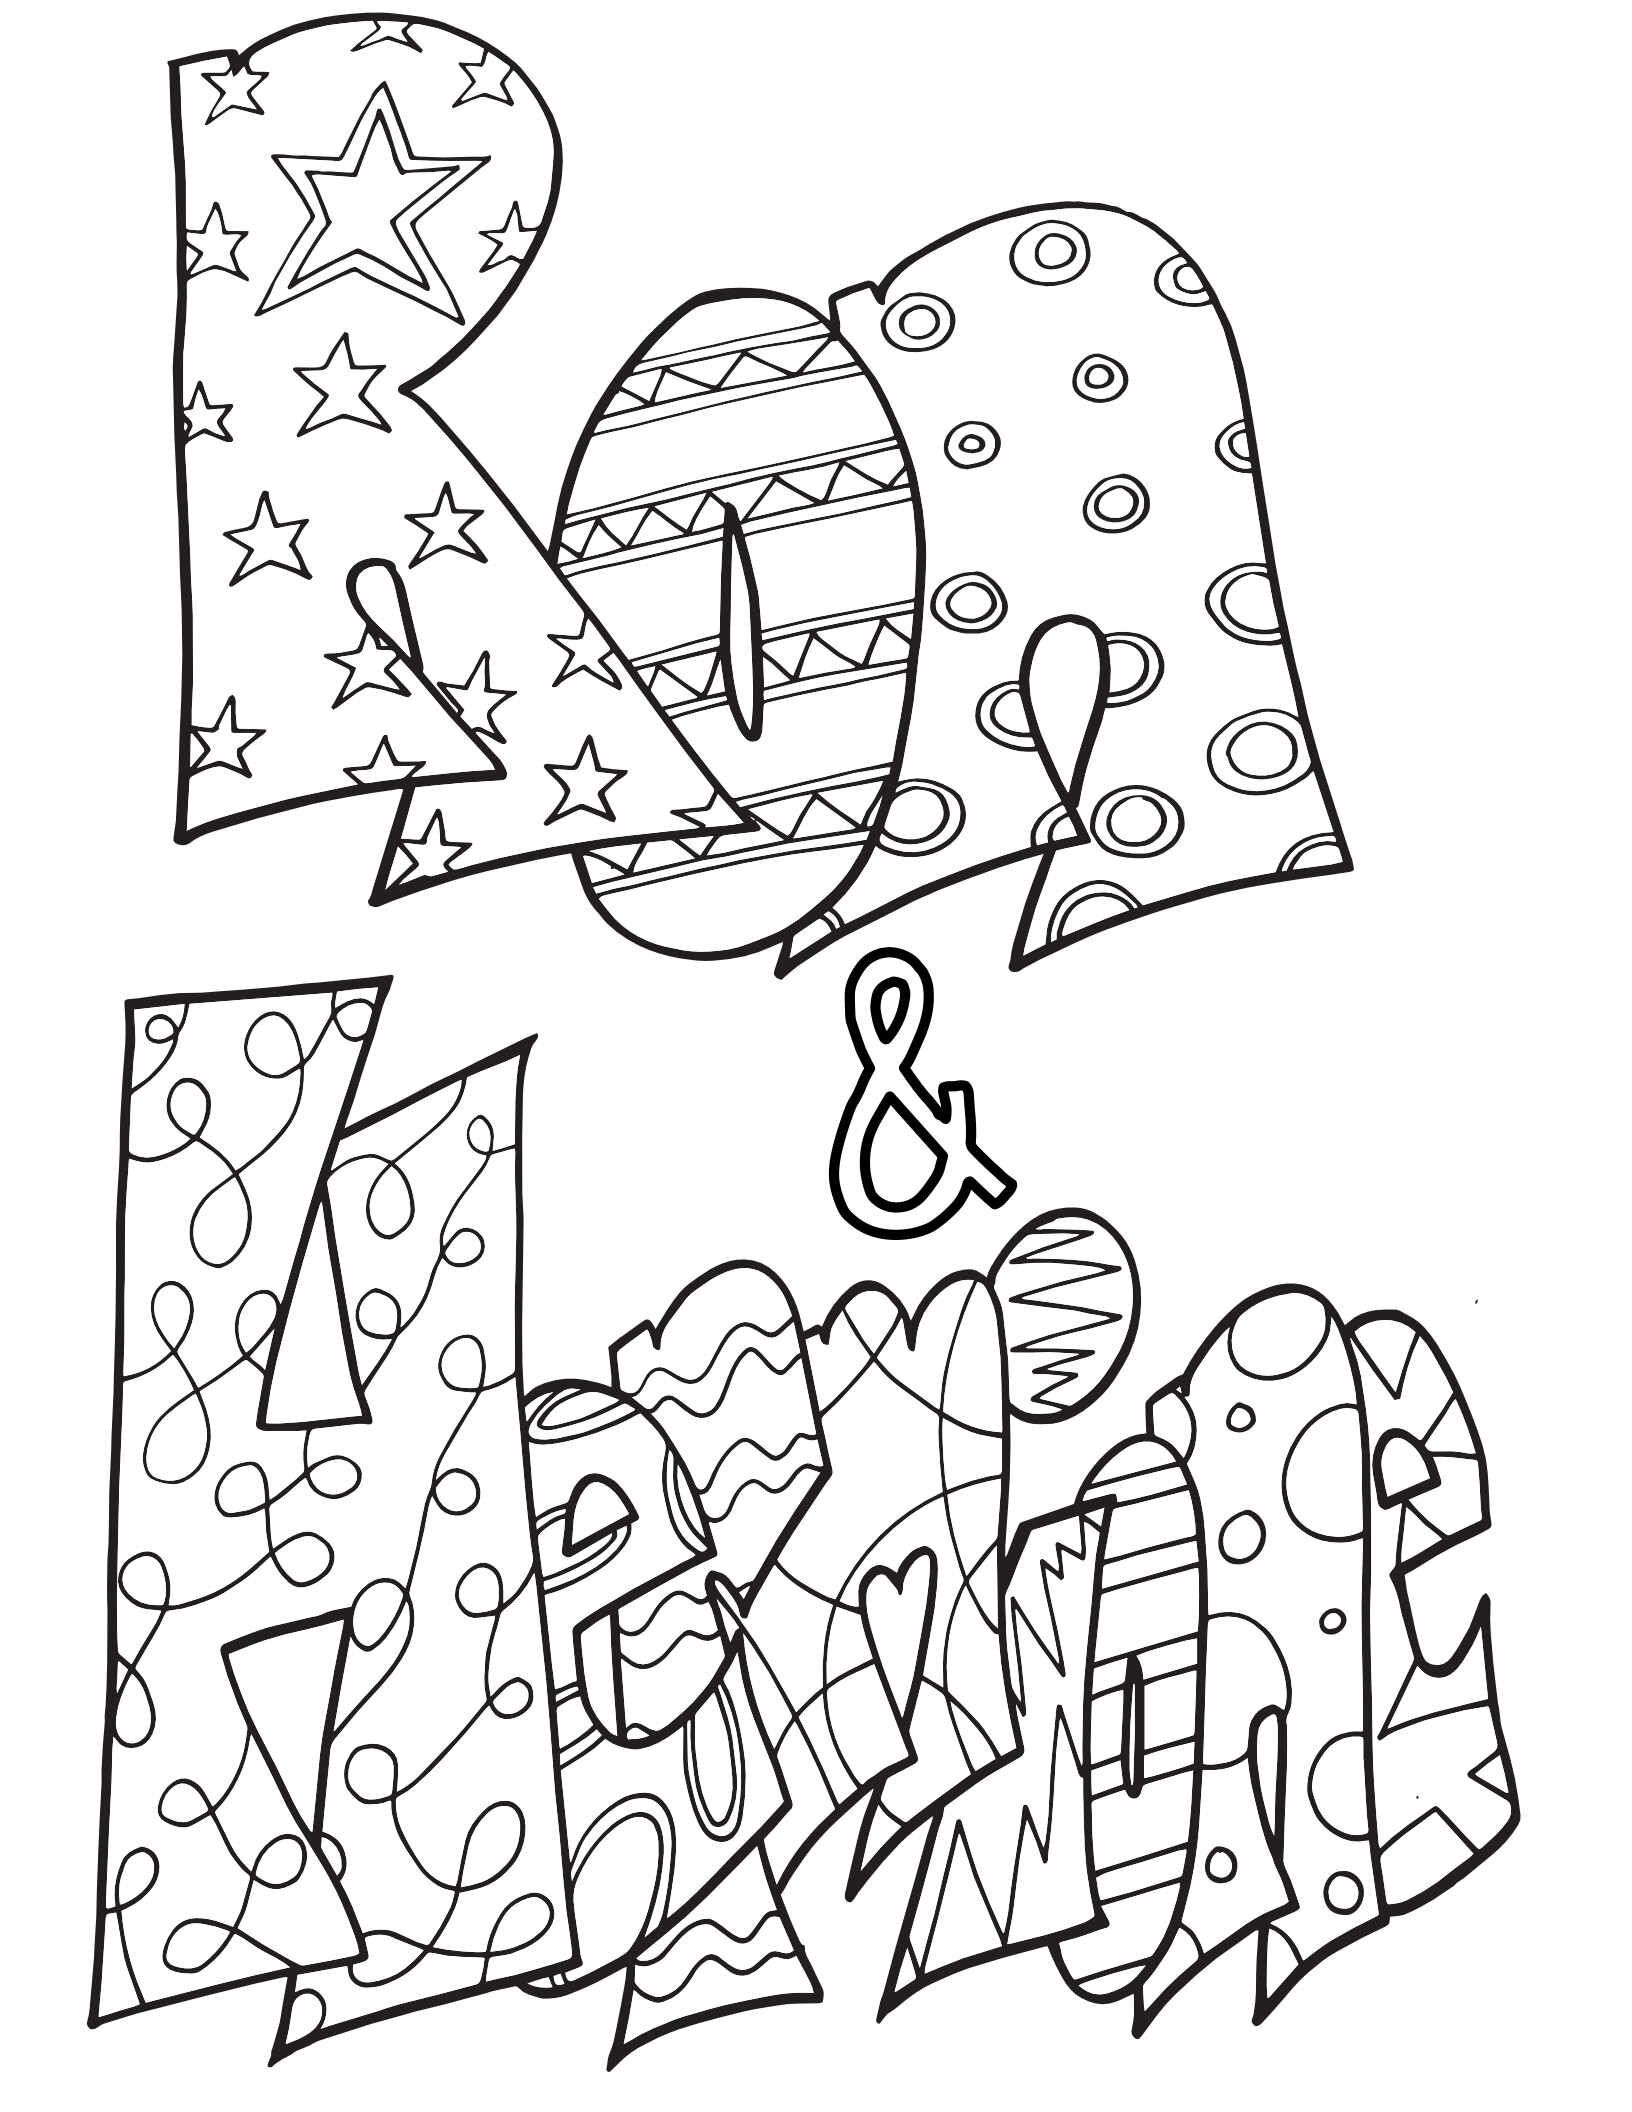 10 Favorite Couples As Coloring Pages Free Valentine S Day Printable Stevie Doodles Harry Potter Coloring Pages Coloring Pages Valentines Day Coloring Page [ 2112 x 1632 Pixel ]